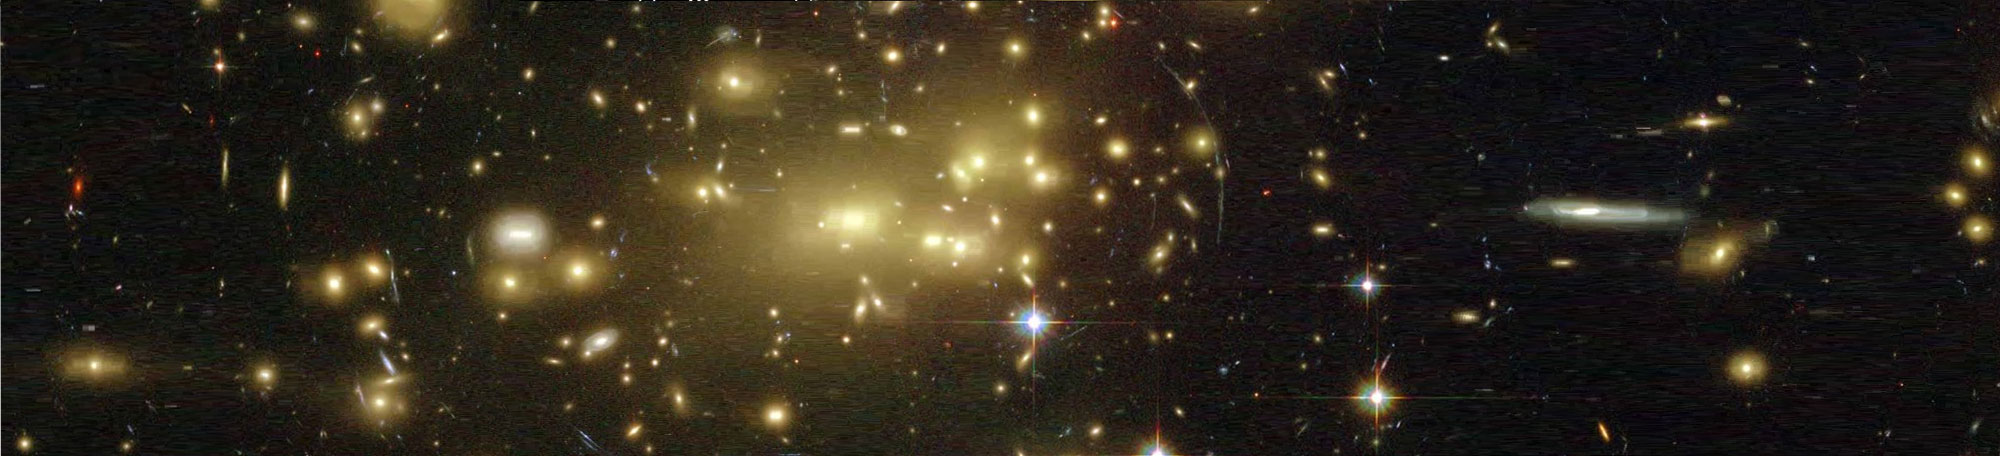 The gravity of galaxy cluster Abell 2218 bends and focuses the light from galaxies that lay behind it in this Hubble Space Telescope image. The effect distorts multiple images of the background galaxies into long, faint arcs. Credit and Copyright: NASA, A